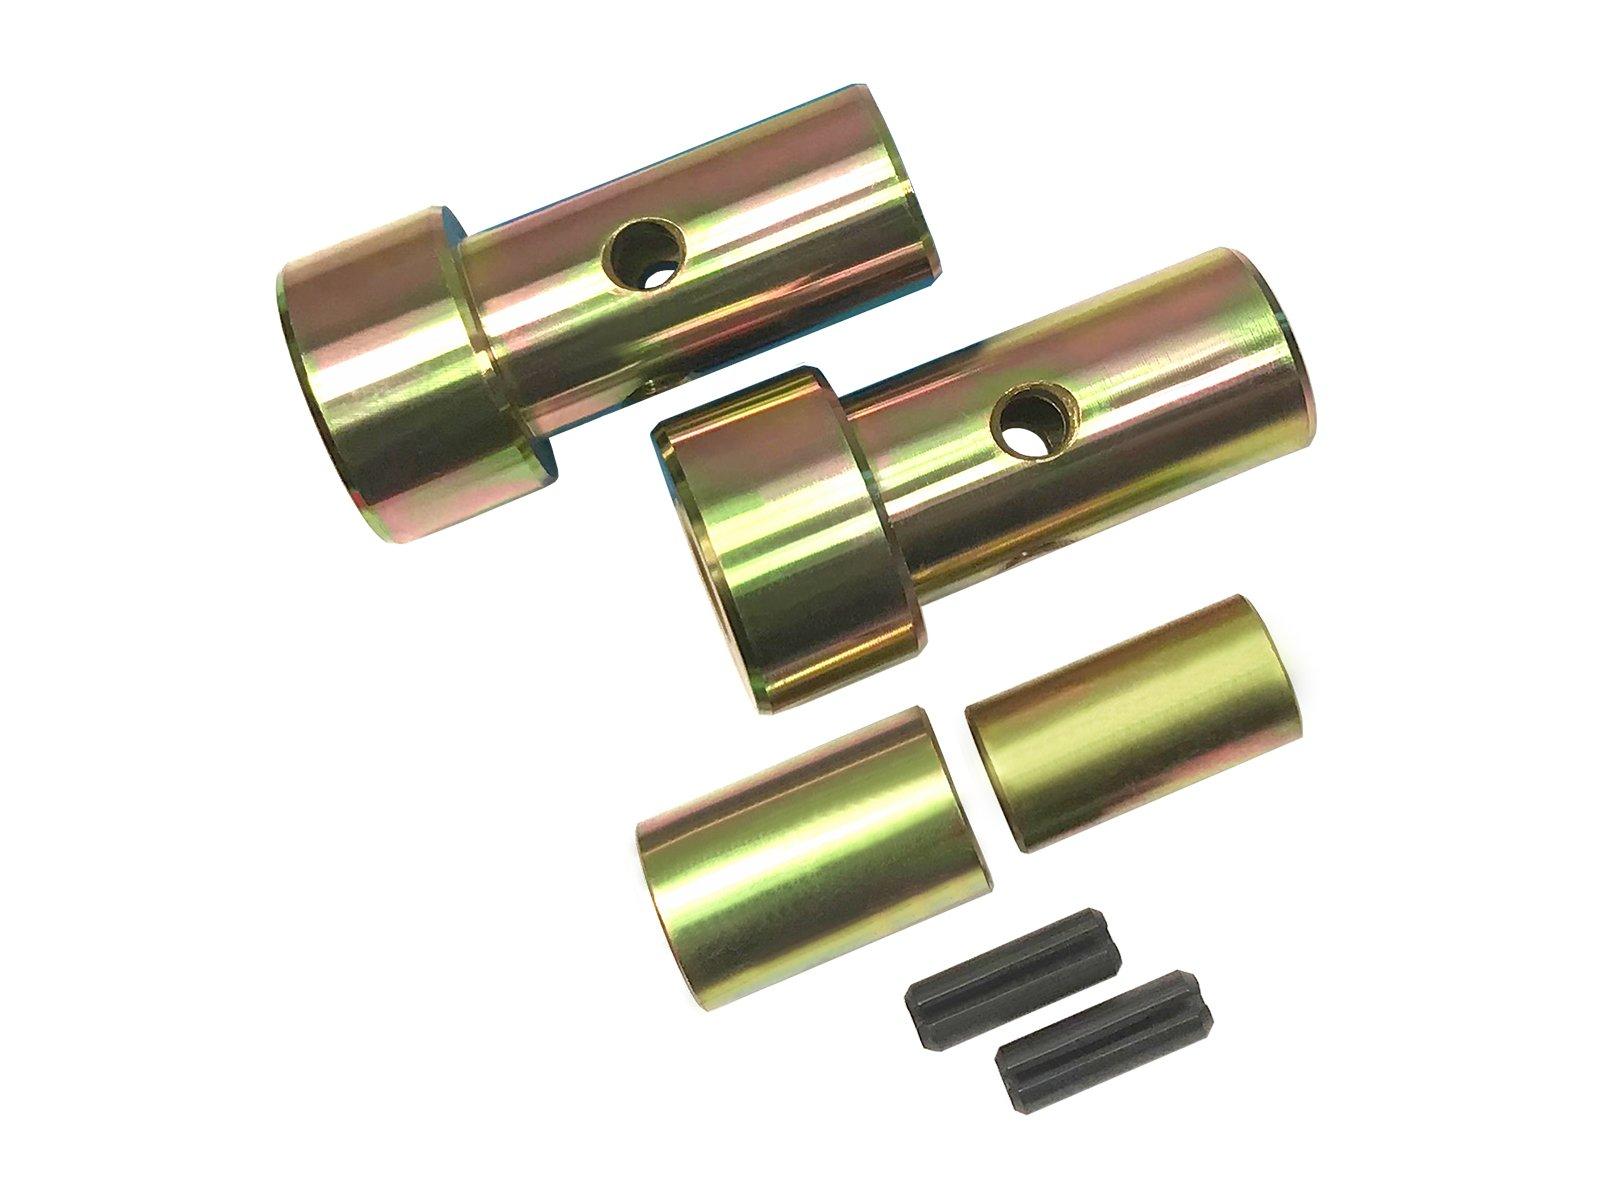 TerraKing Quick Hitch Bushing Kit - Category 1 [TK95029] by TerraKing